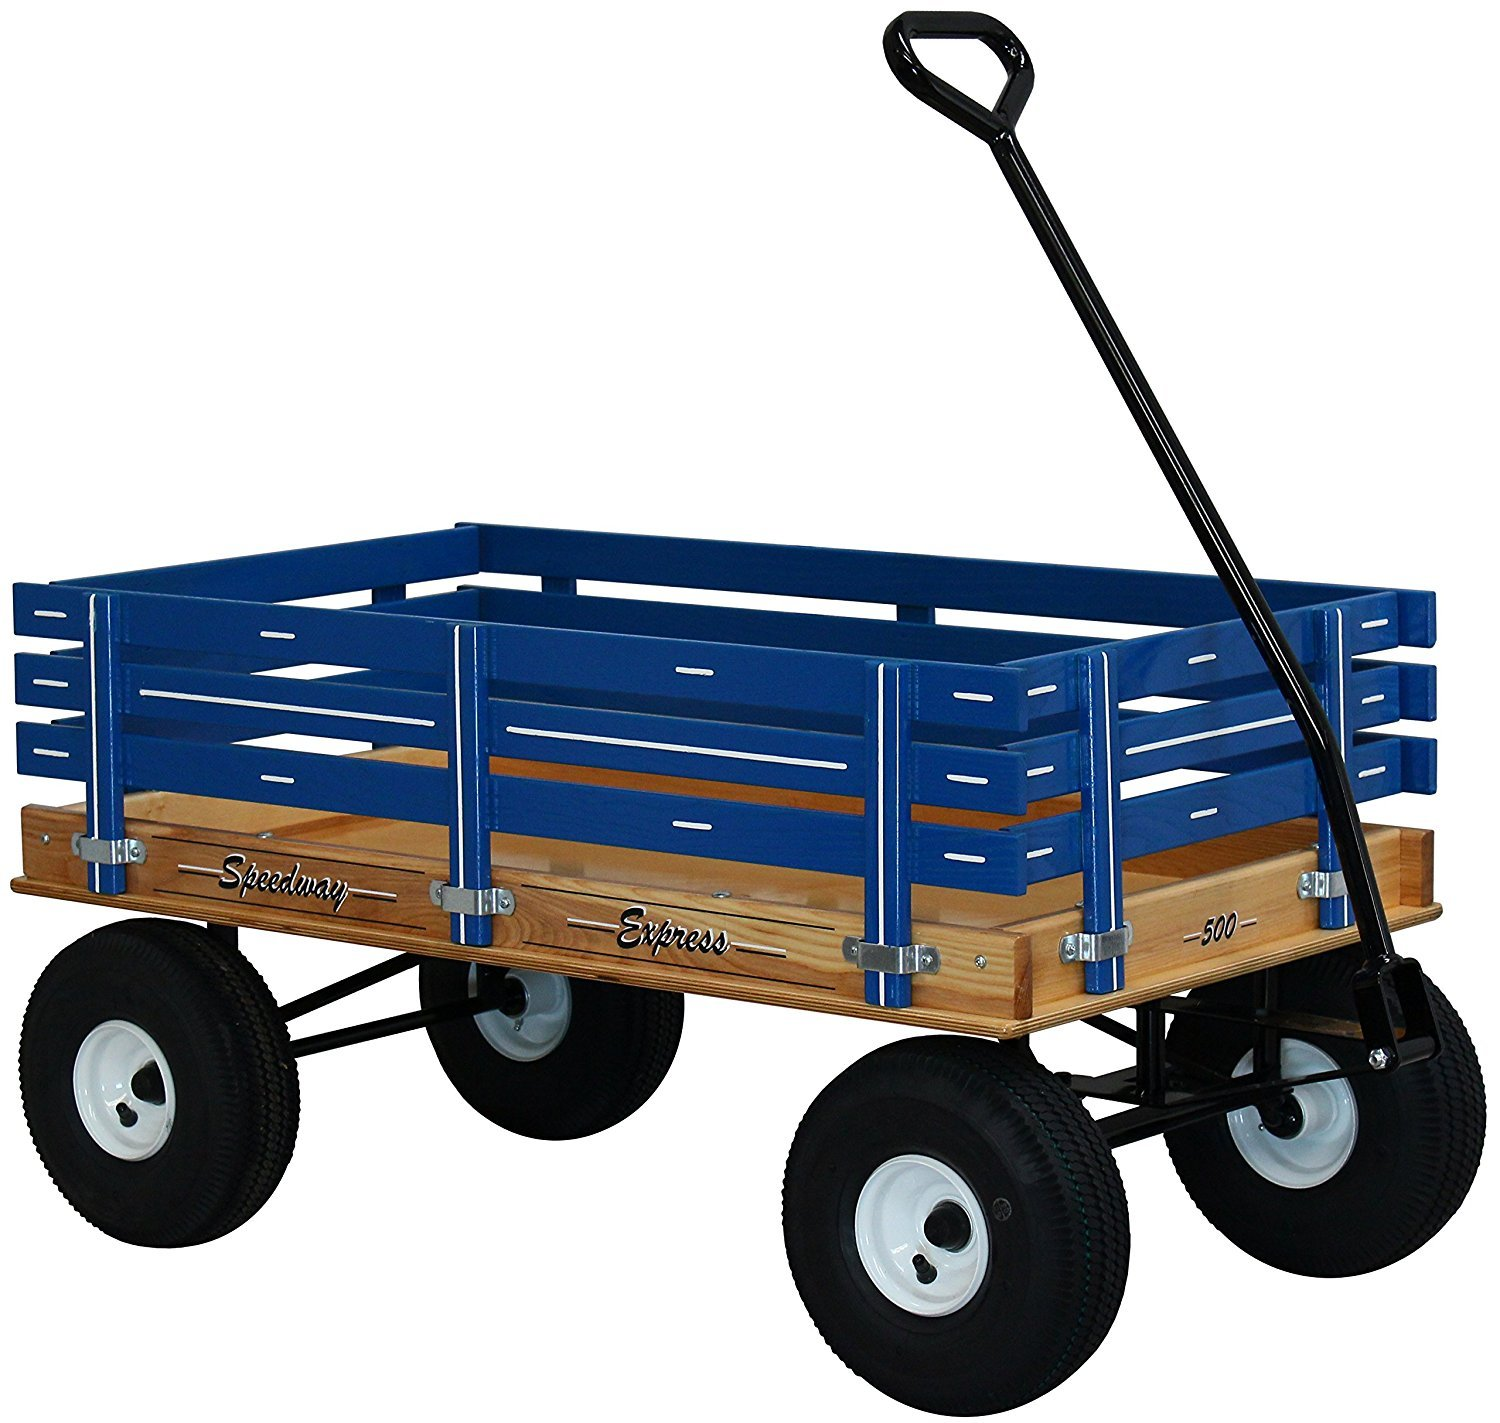 Speedway Express Wagon Model 500 Home Furniture Design